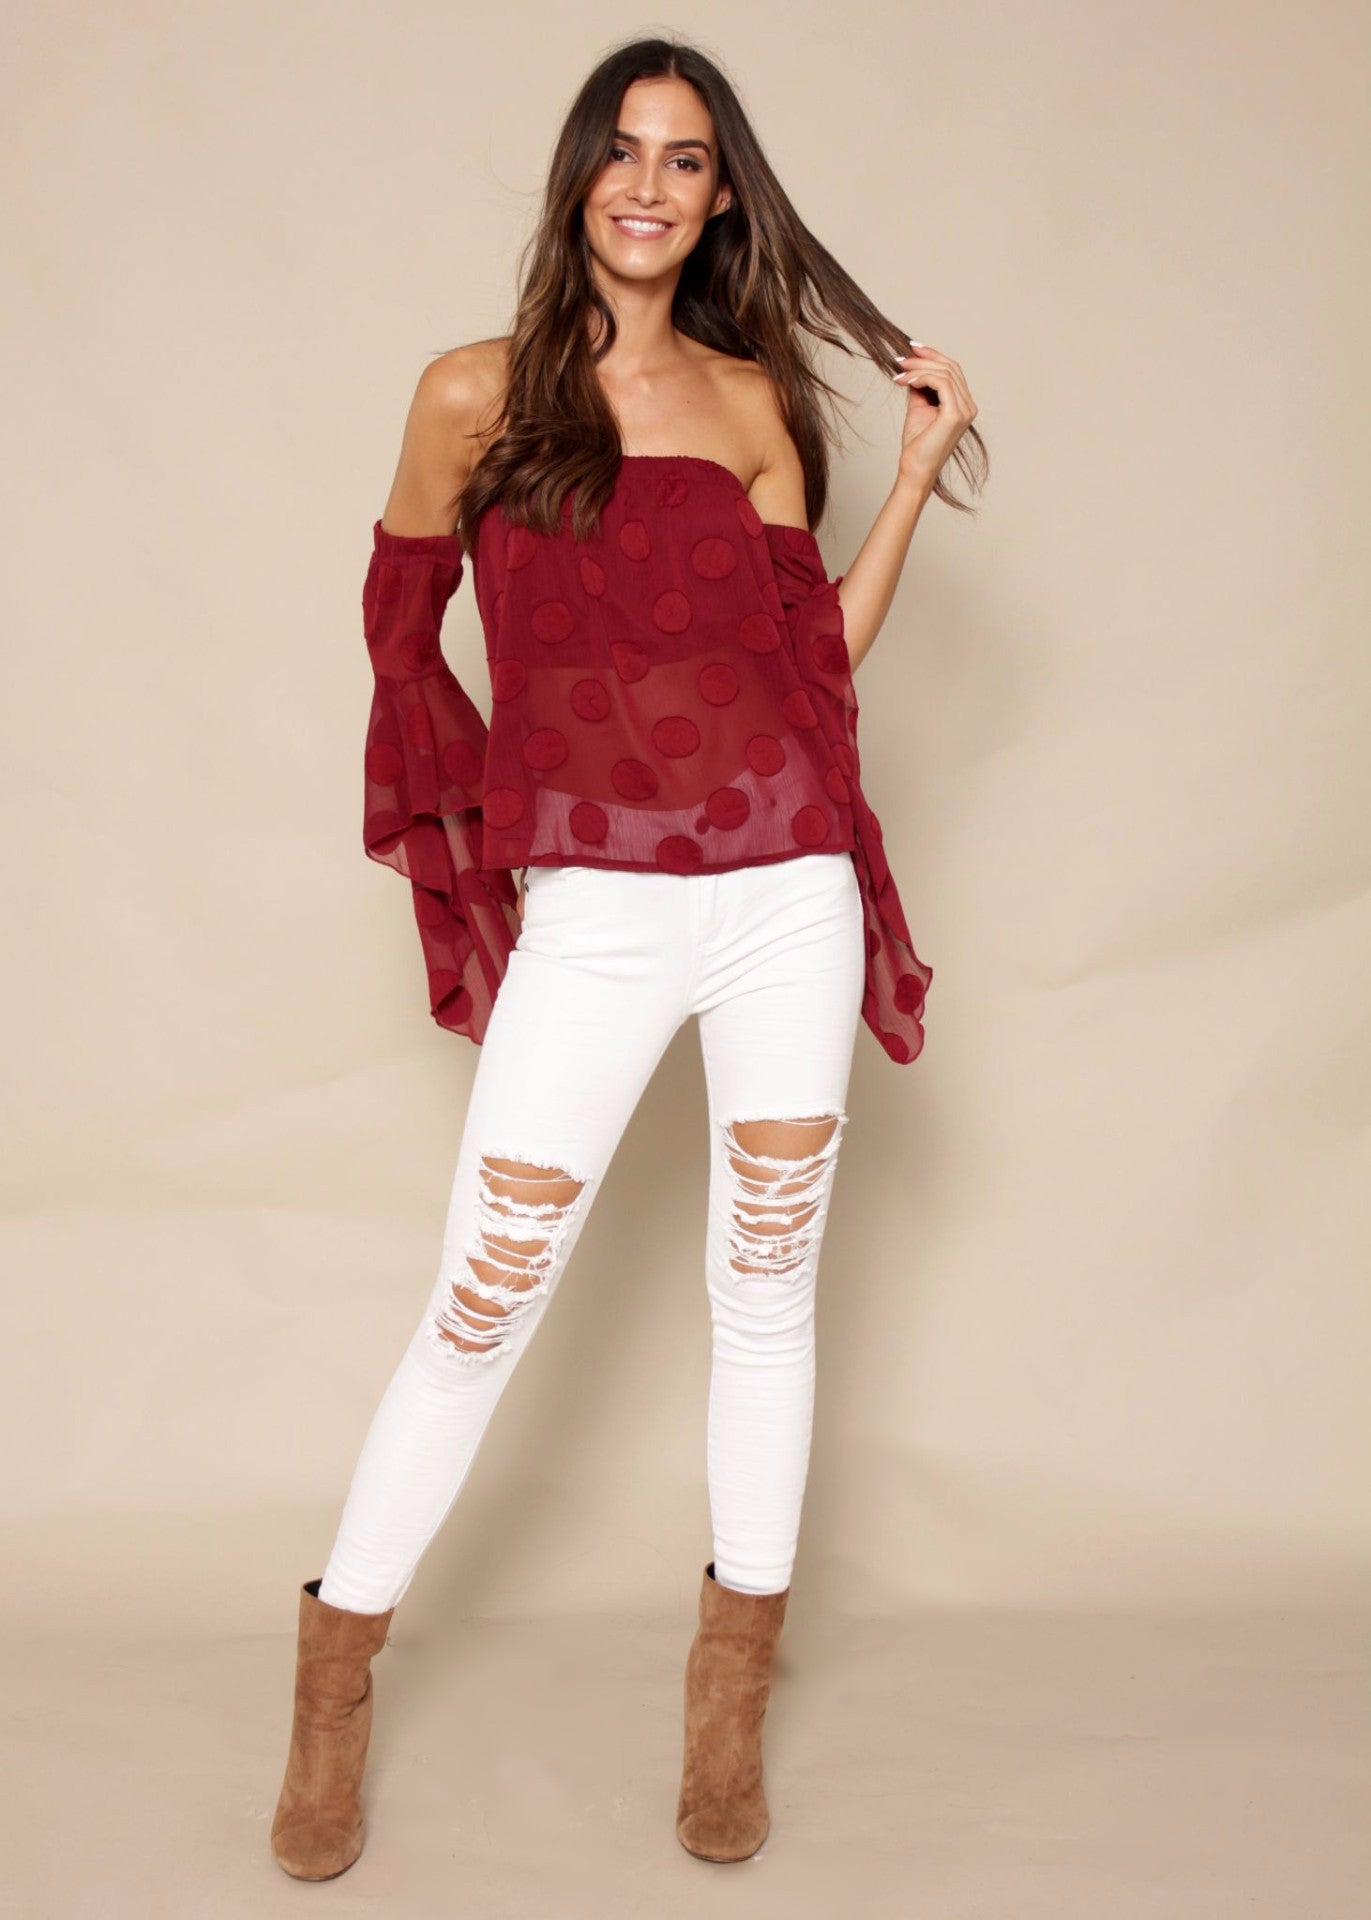 Summer Sun Off Shoulder Blouse - Burgundy Polka